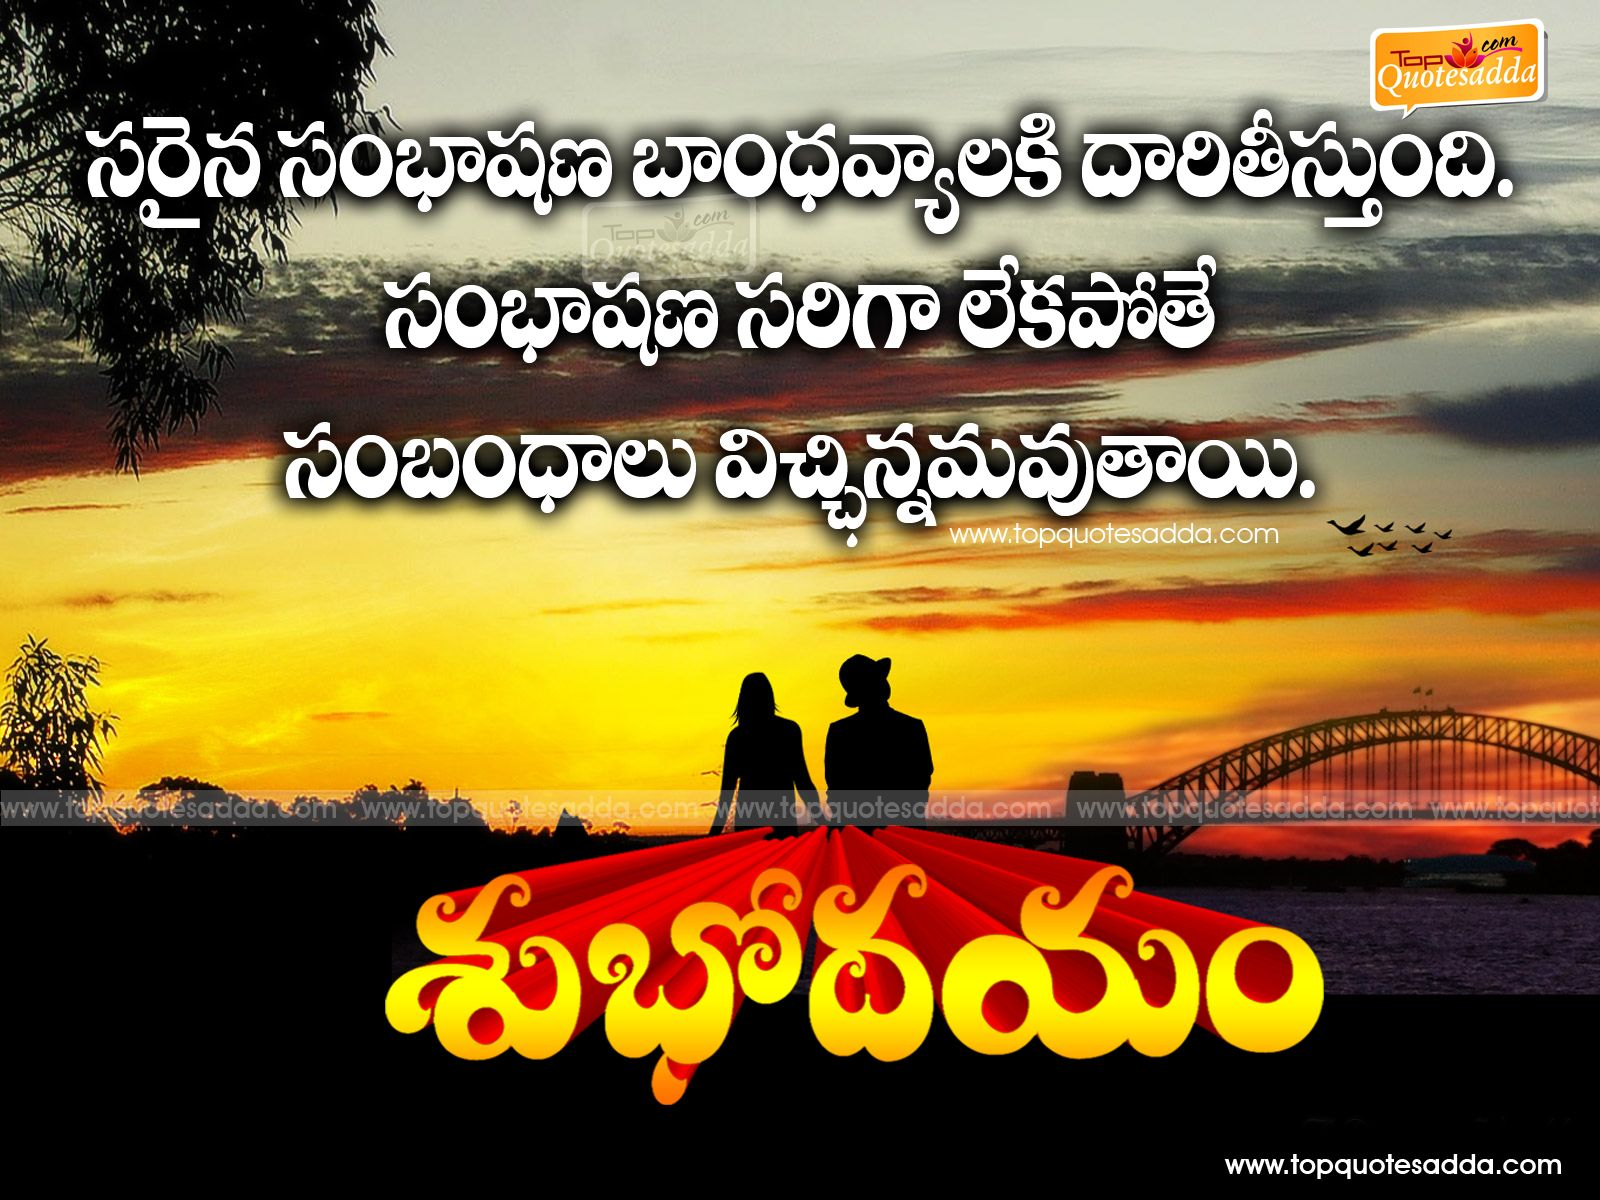 Good Morning Quotes For Friends On Facebook